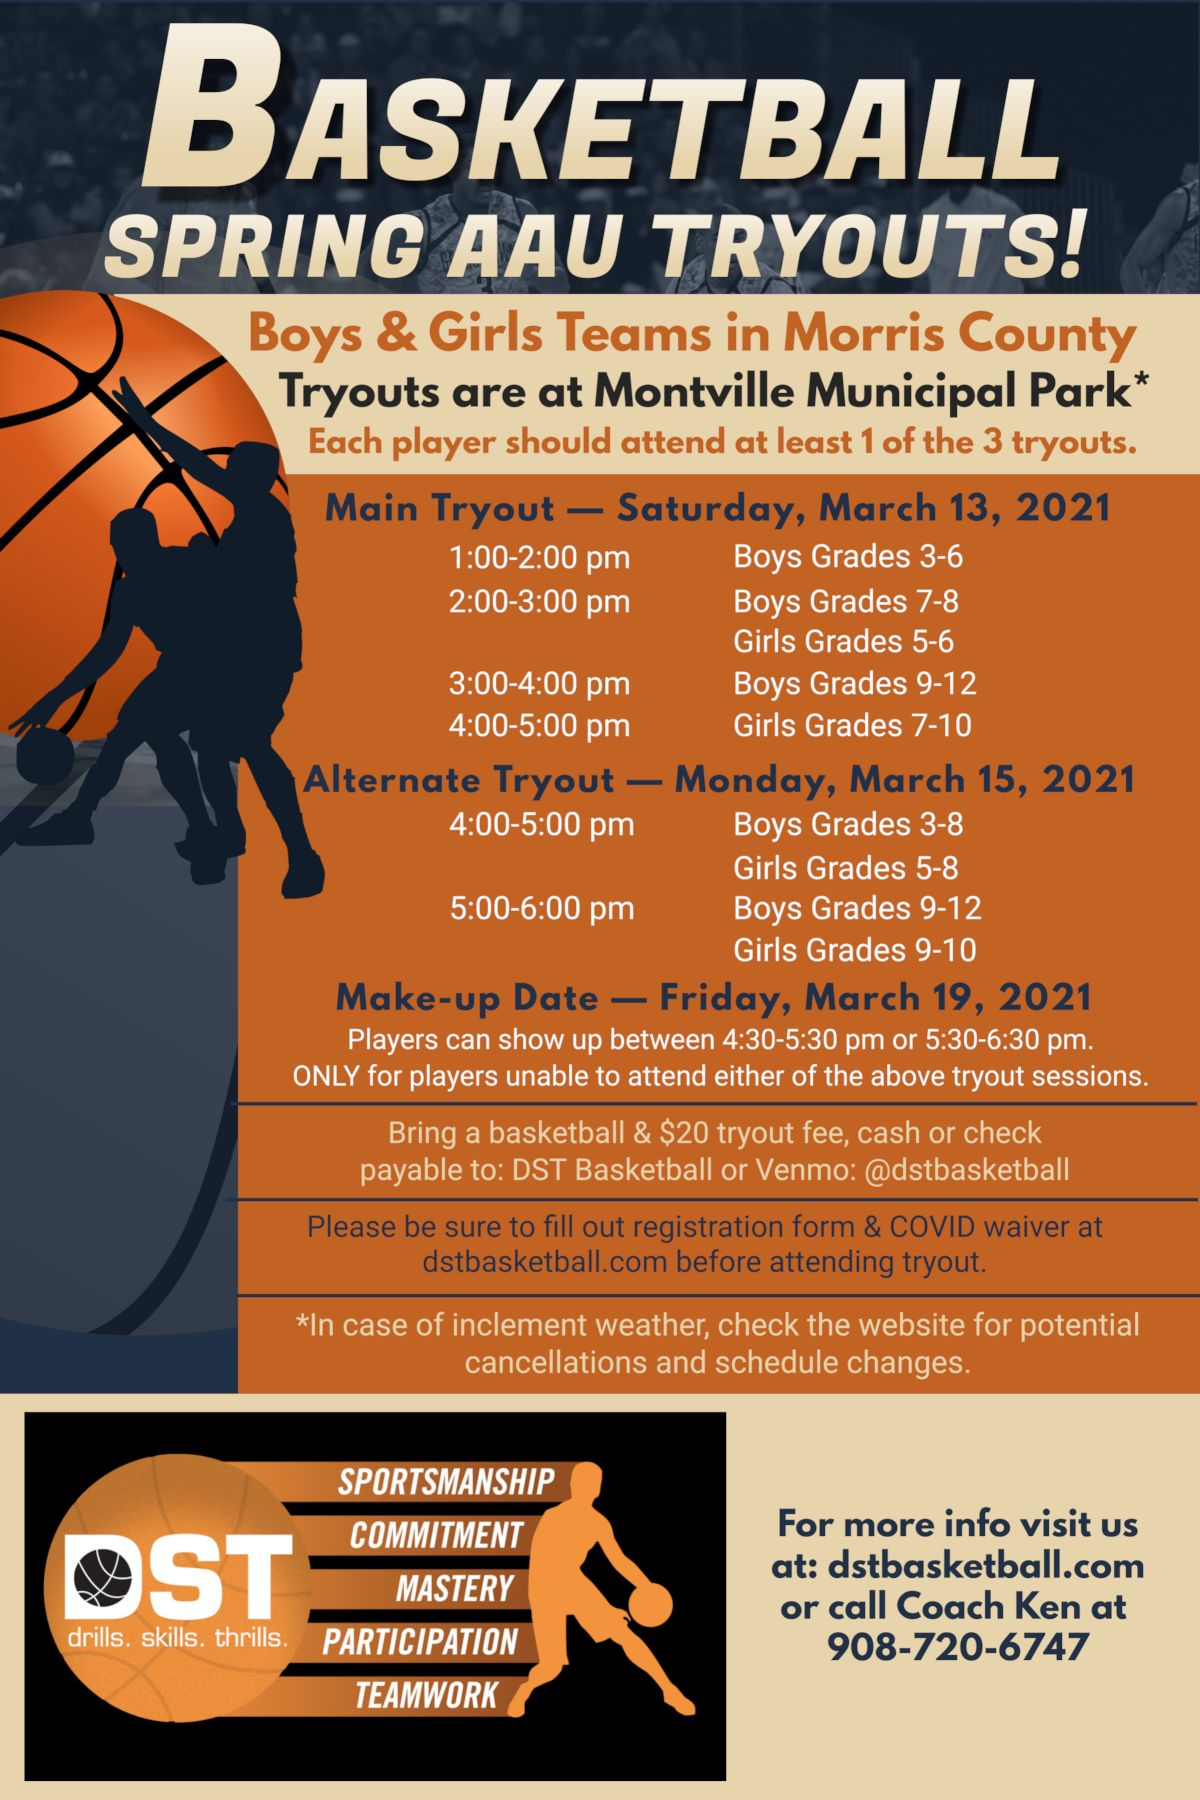 DST Basketball - Morris County AAU Tryouts